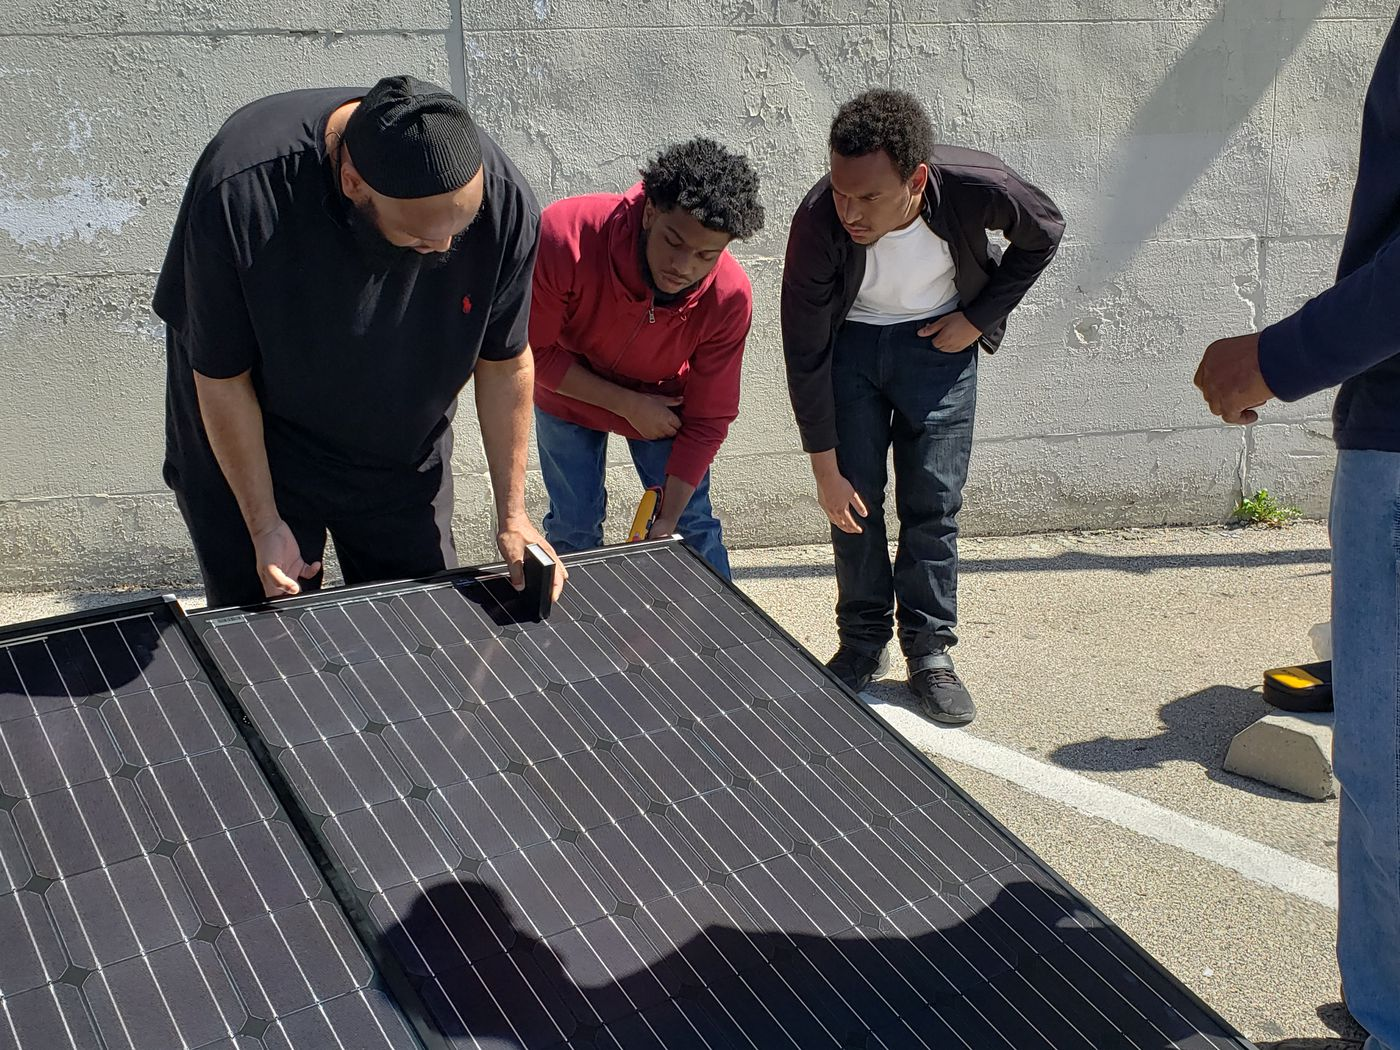 Free solar training programs line up jobs for unemployed in Philly's